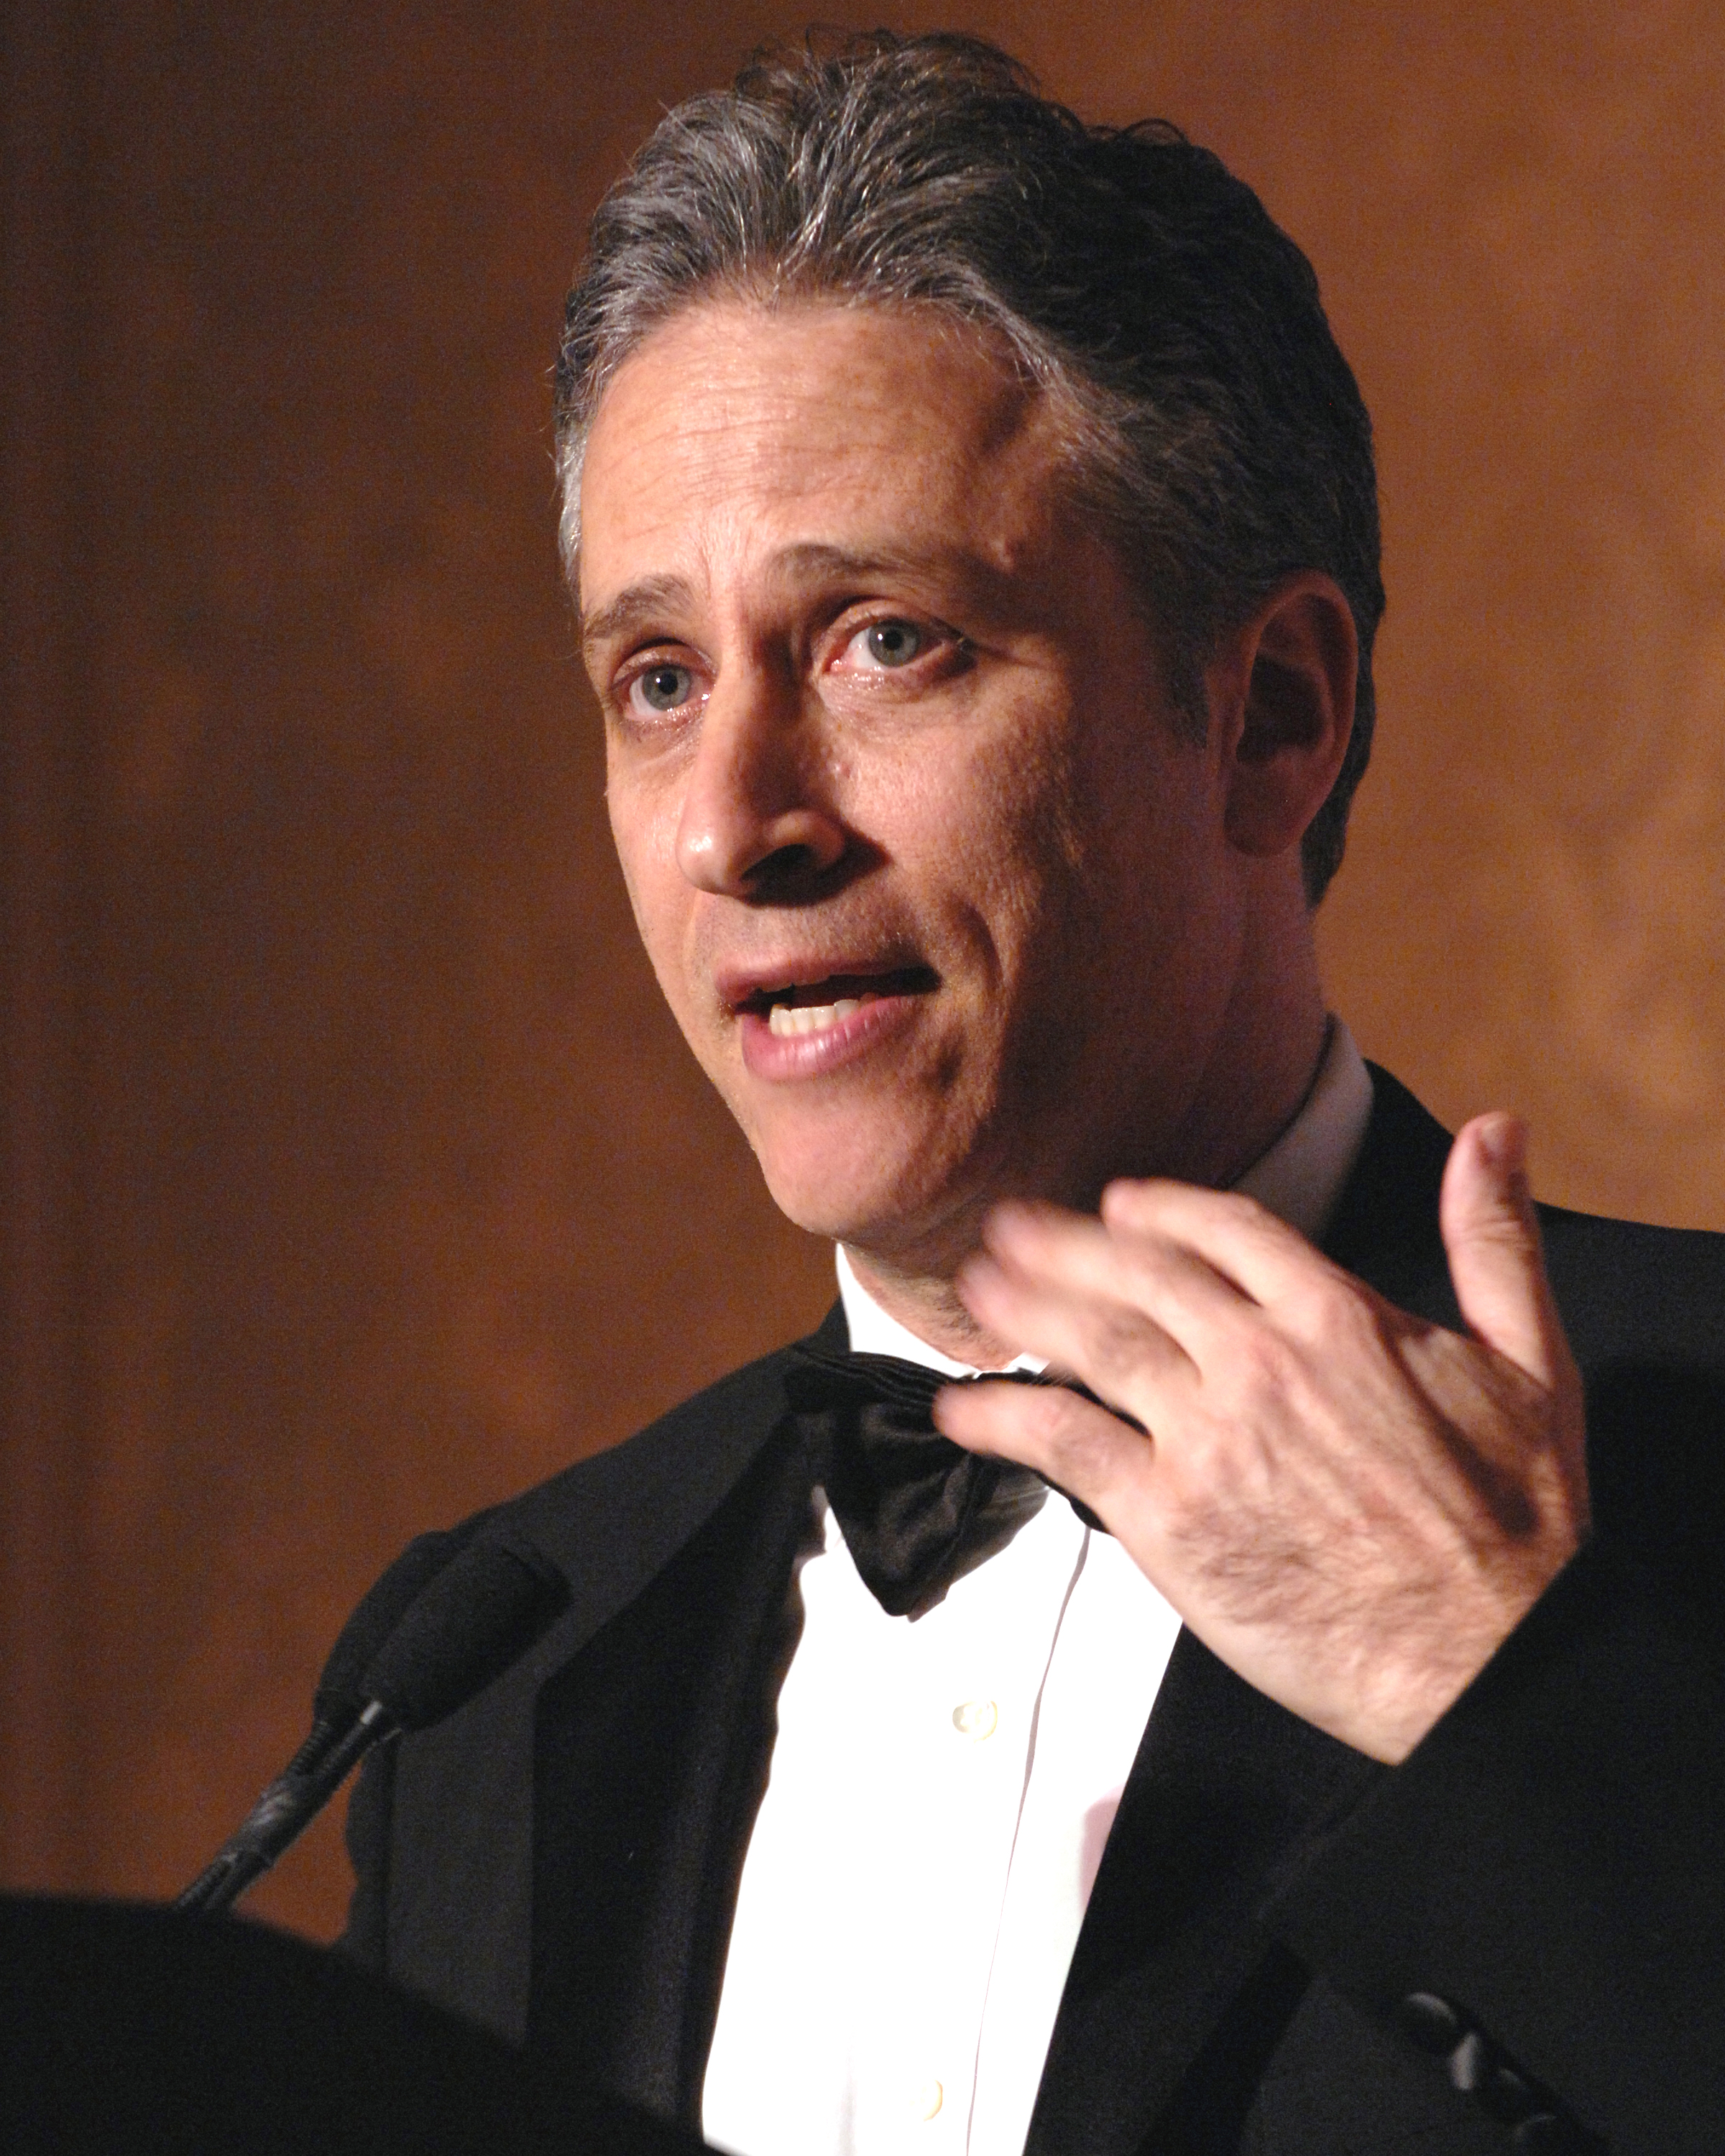 Pictures of Jon Stewart, Picture #120892 - Pictures Of Celebrities